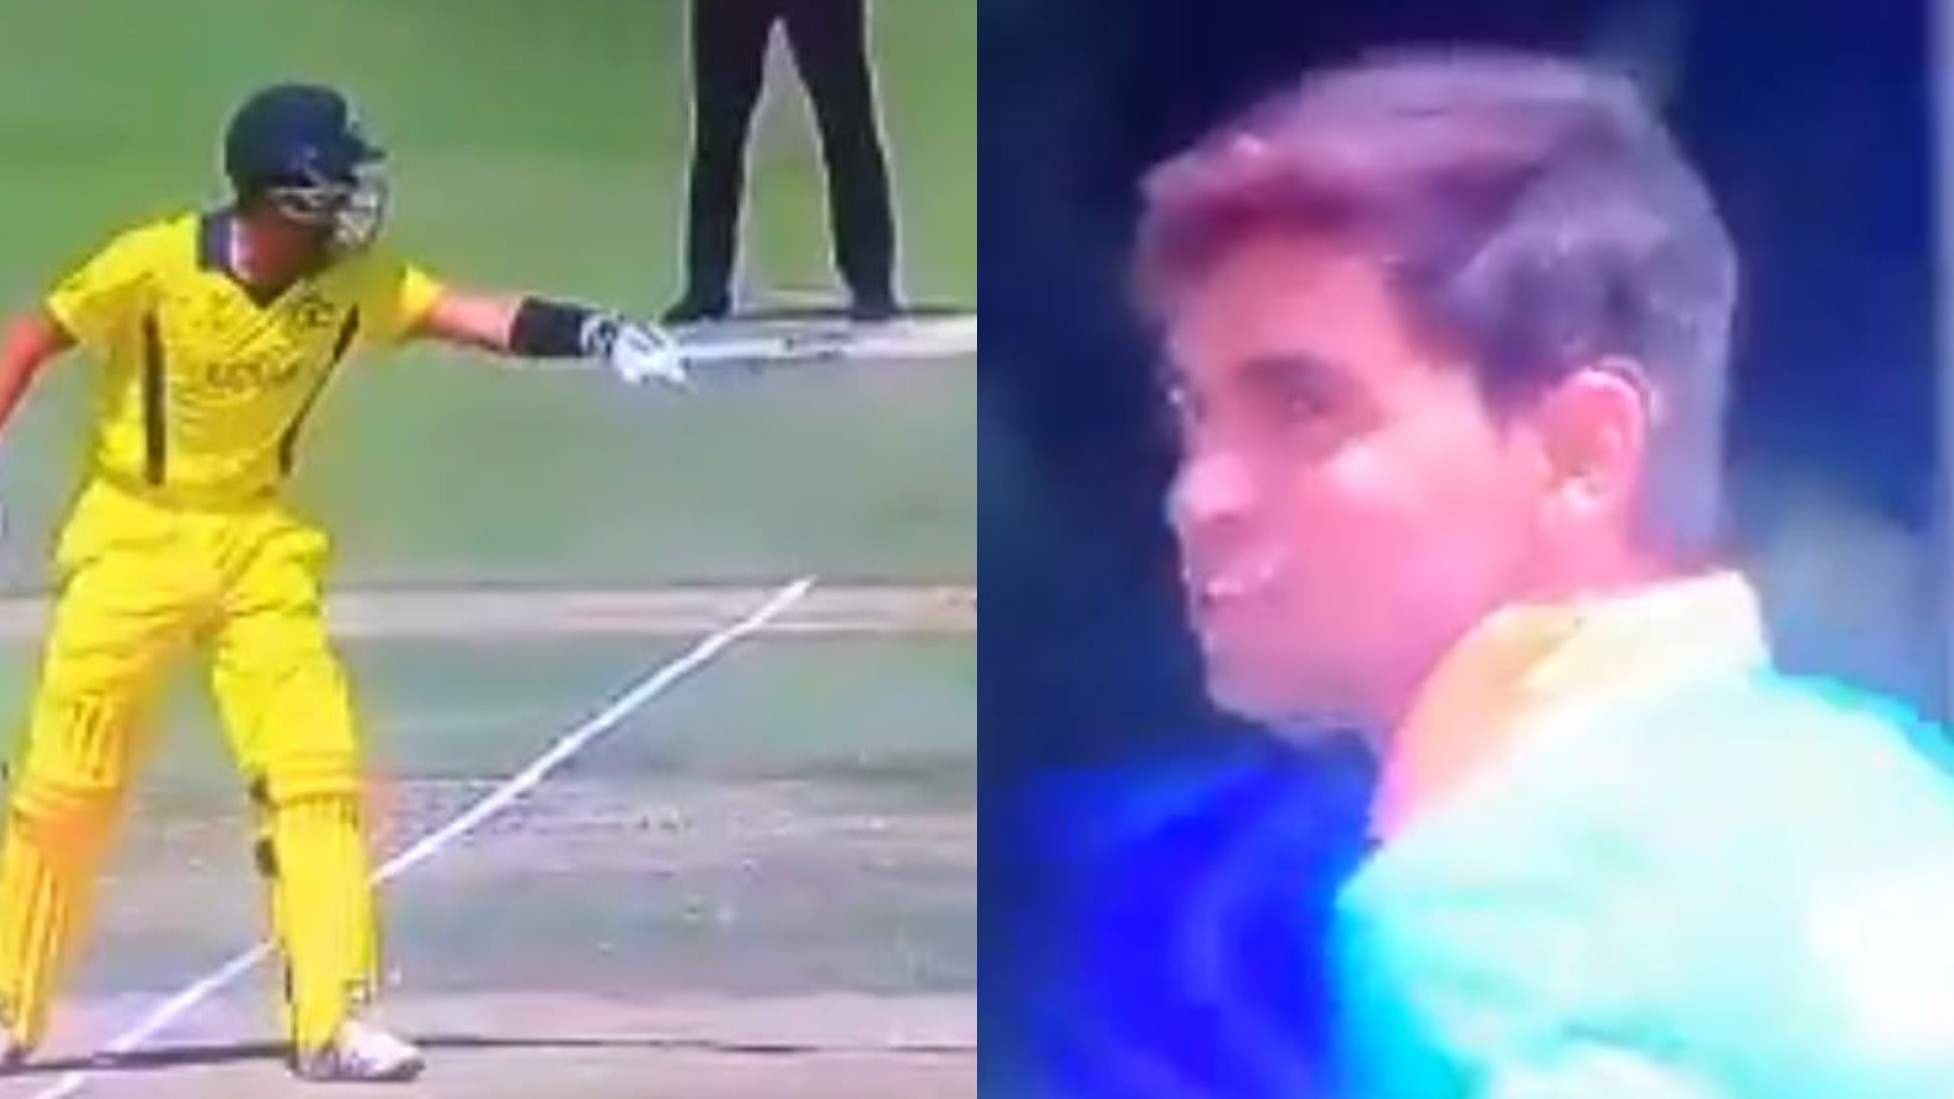 U19CWC 2020: WATCH- Kartik Tyagi's perfect revenge on Oliver Davies after being sledged by him